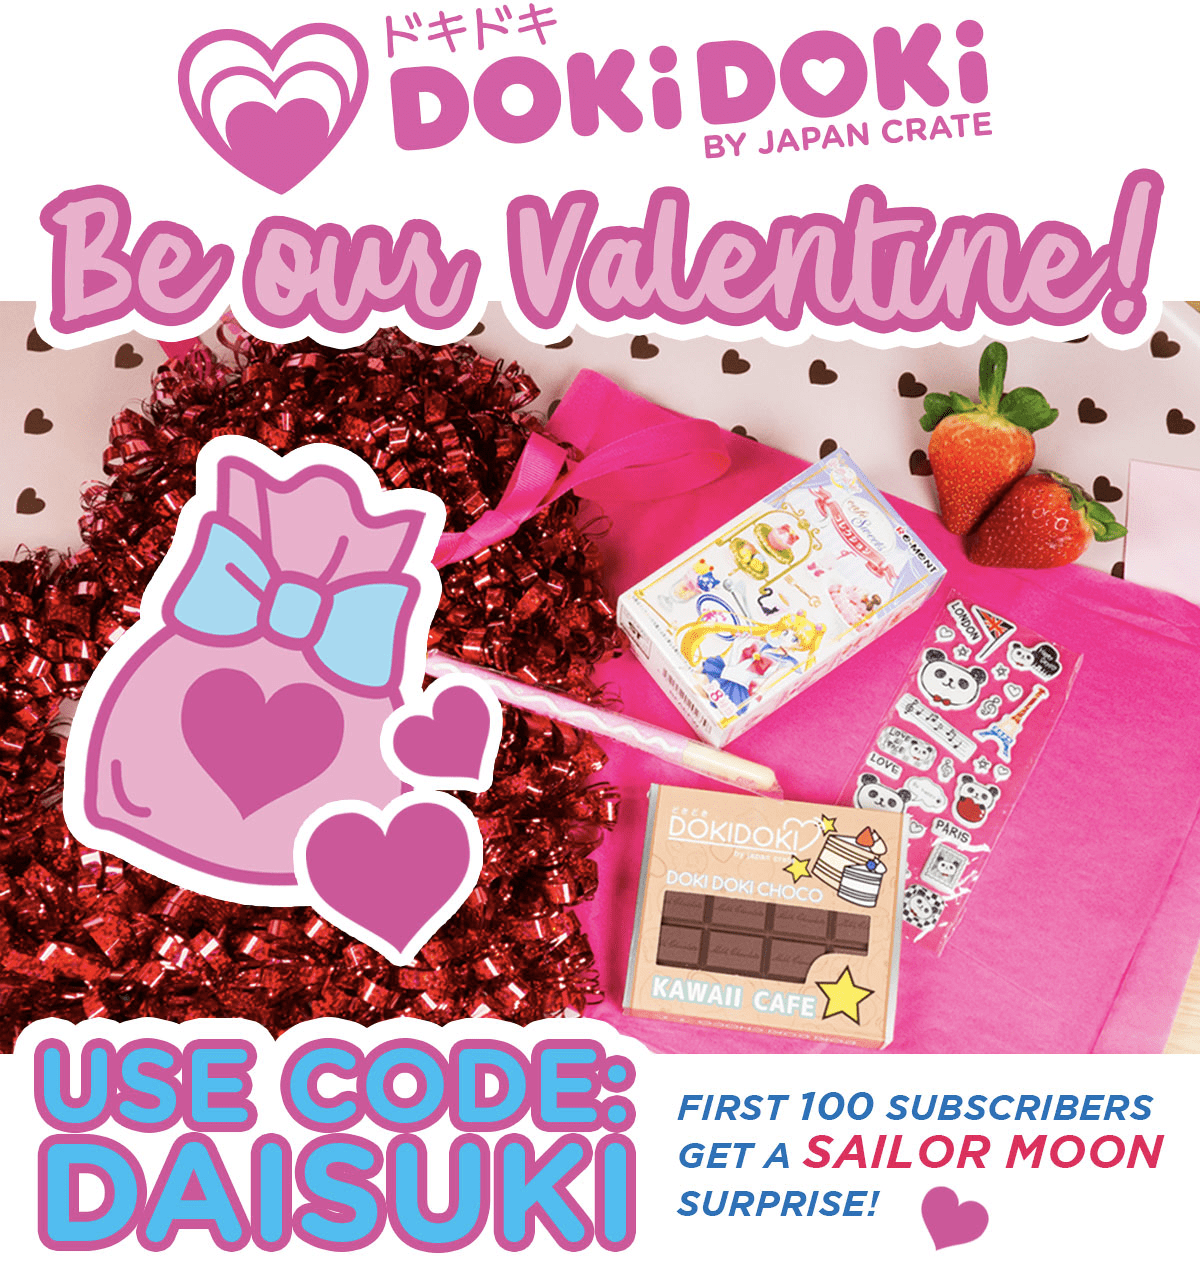 Doki Doki Crate Is Offering A FREE Valentineu0027s Surprise Bag With A Sailor  Moon Surprise When You Sign Up For A New Doki Doki Crate Subscription With  Code ...